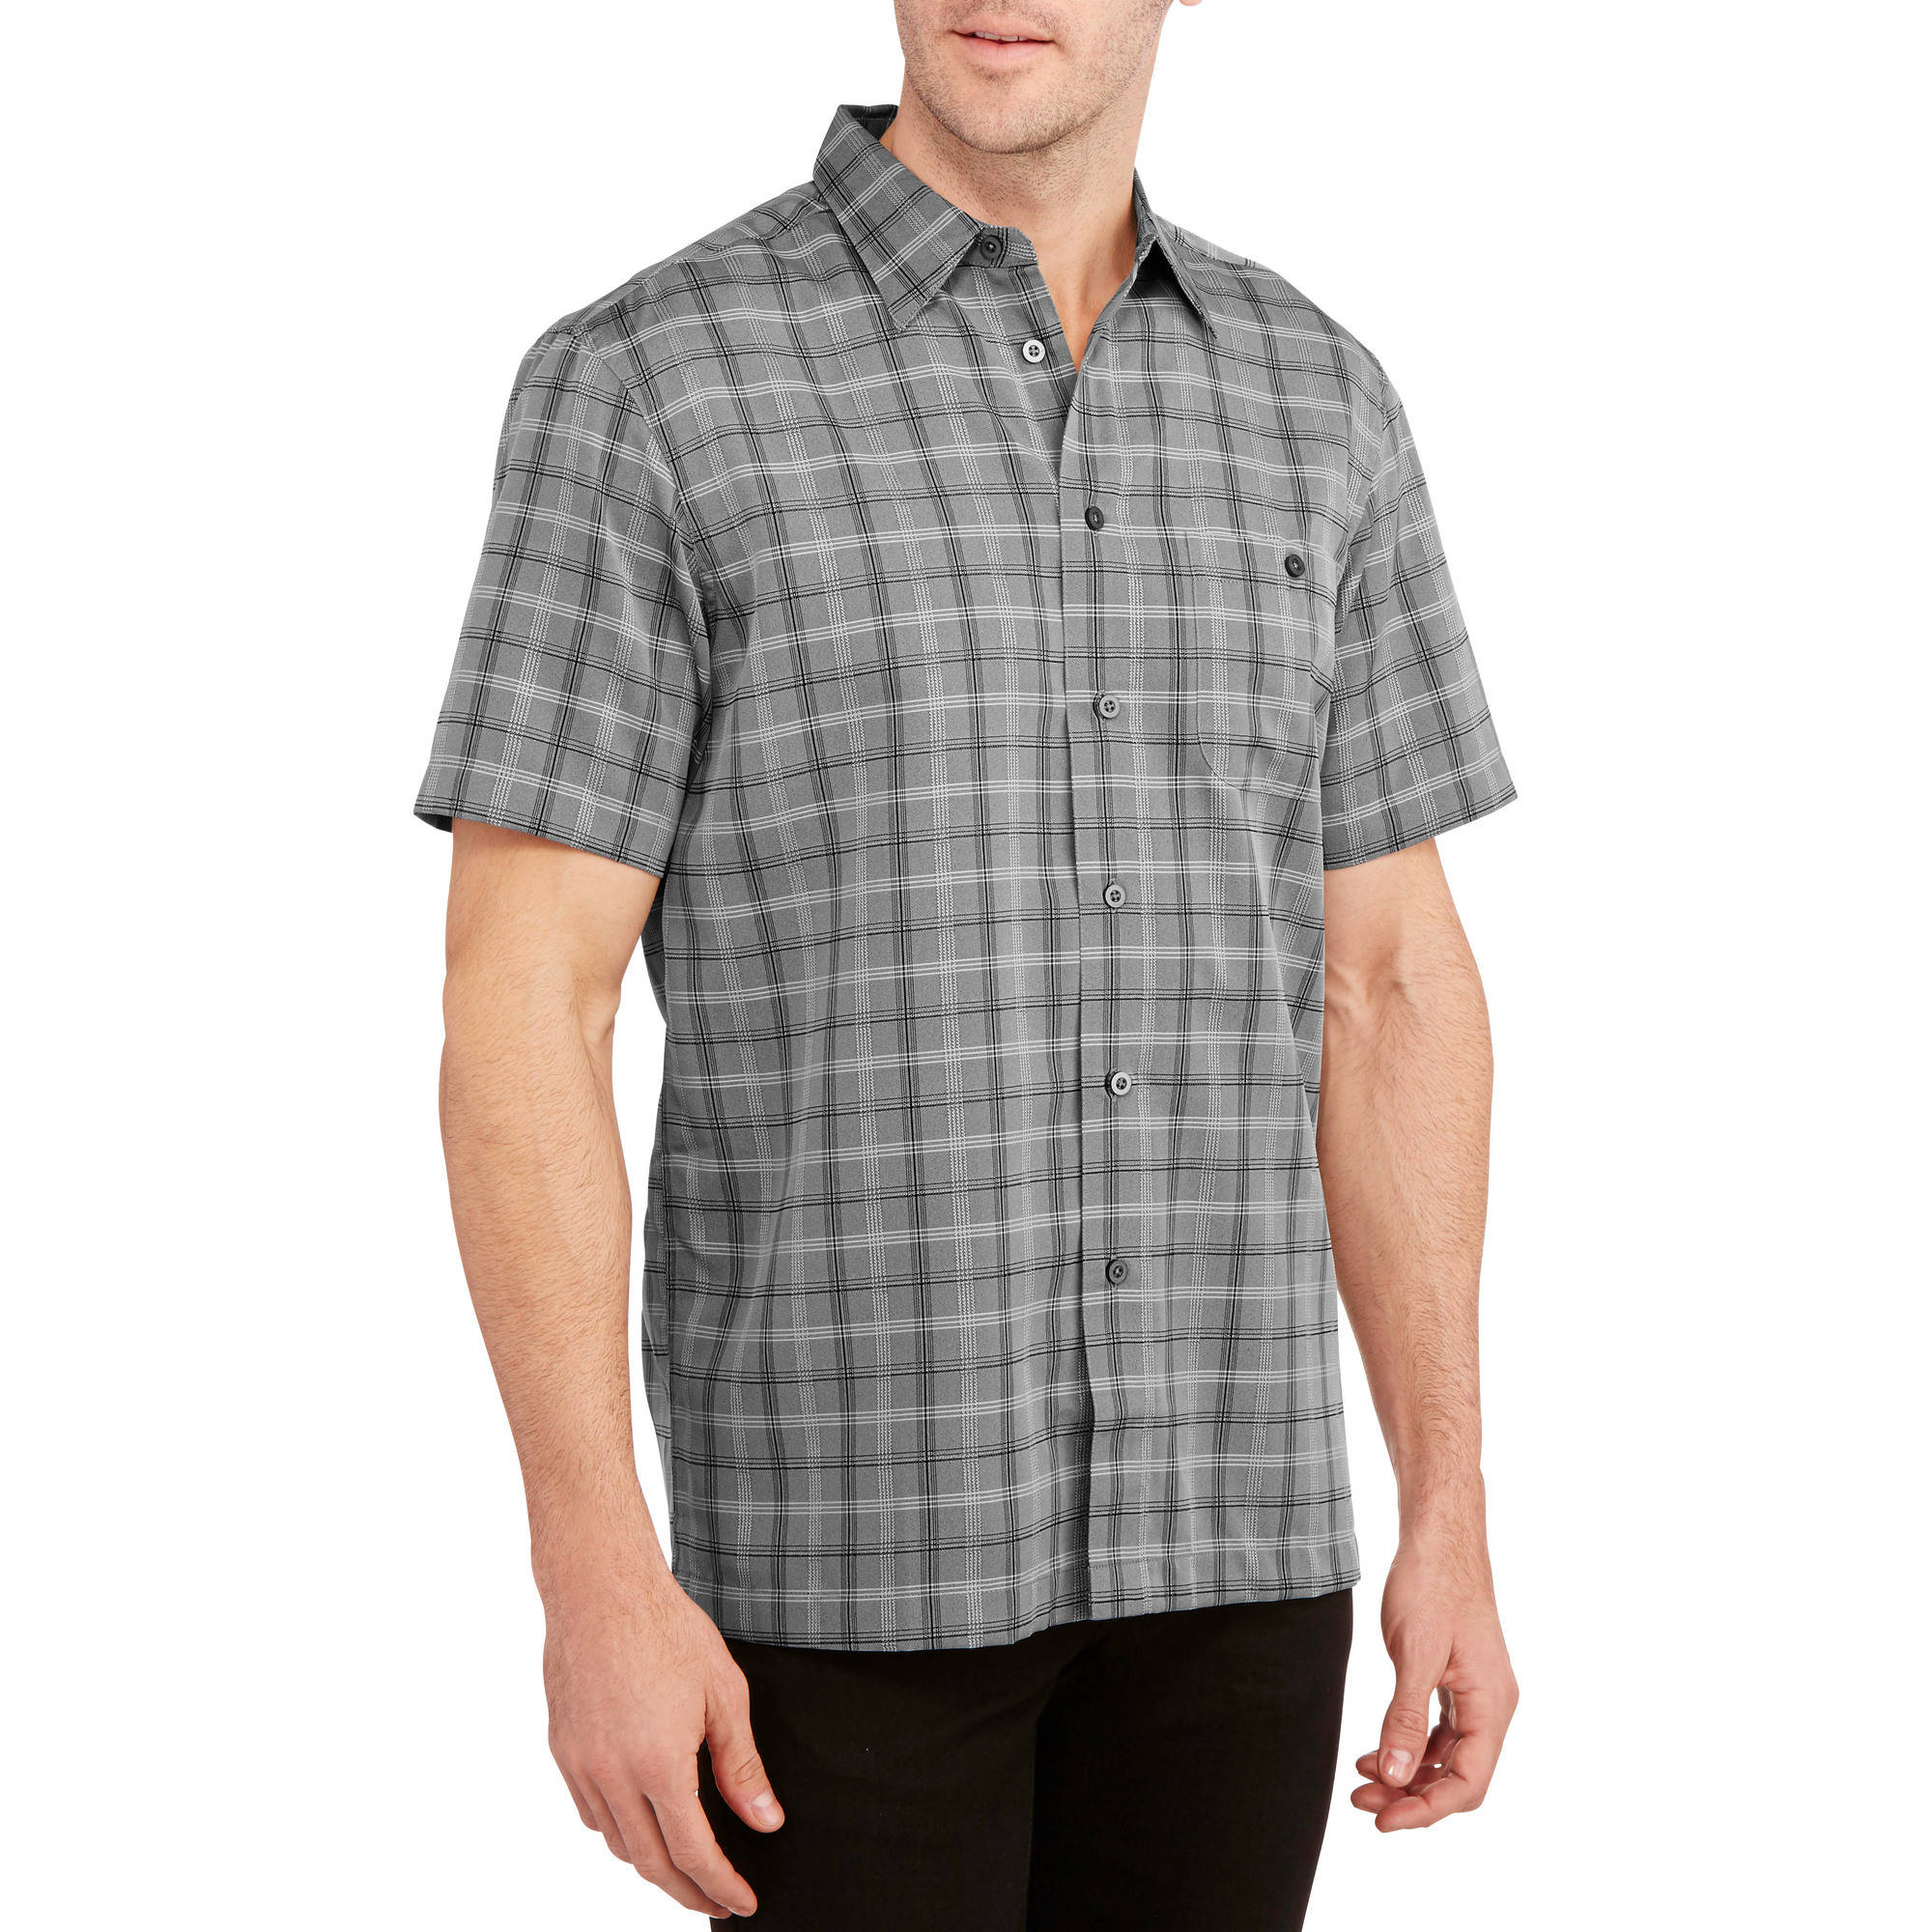 George Men's Short Sleeve Microfiber Shirt - Walmart.com